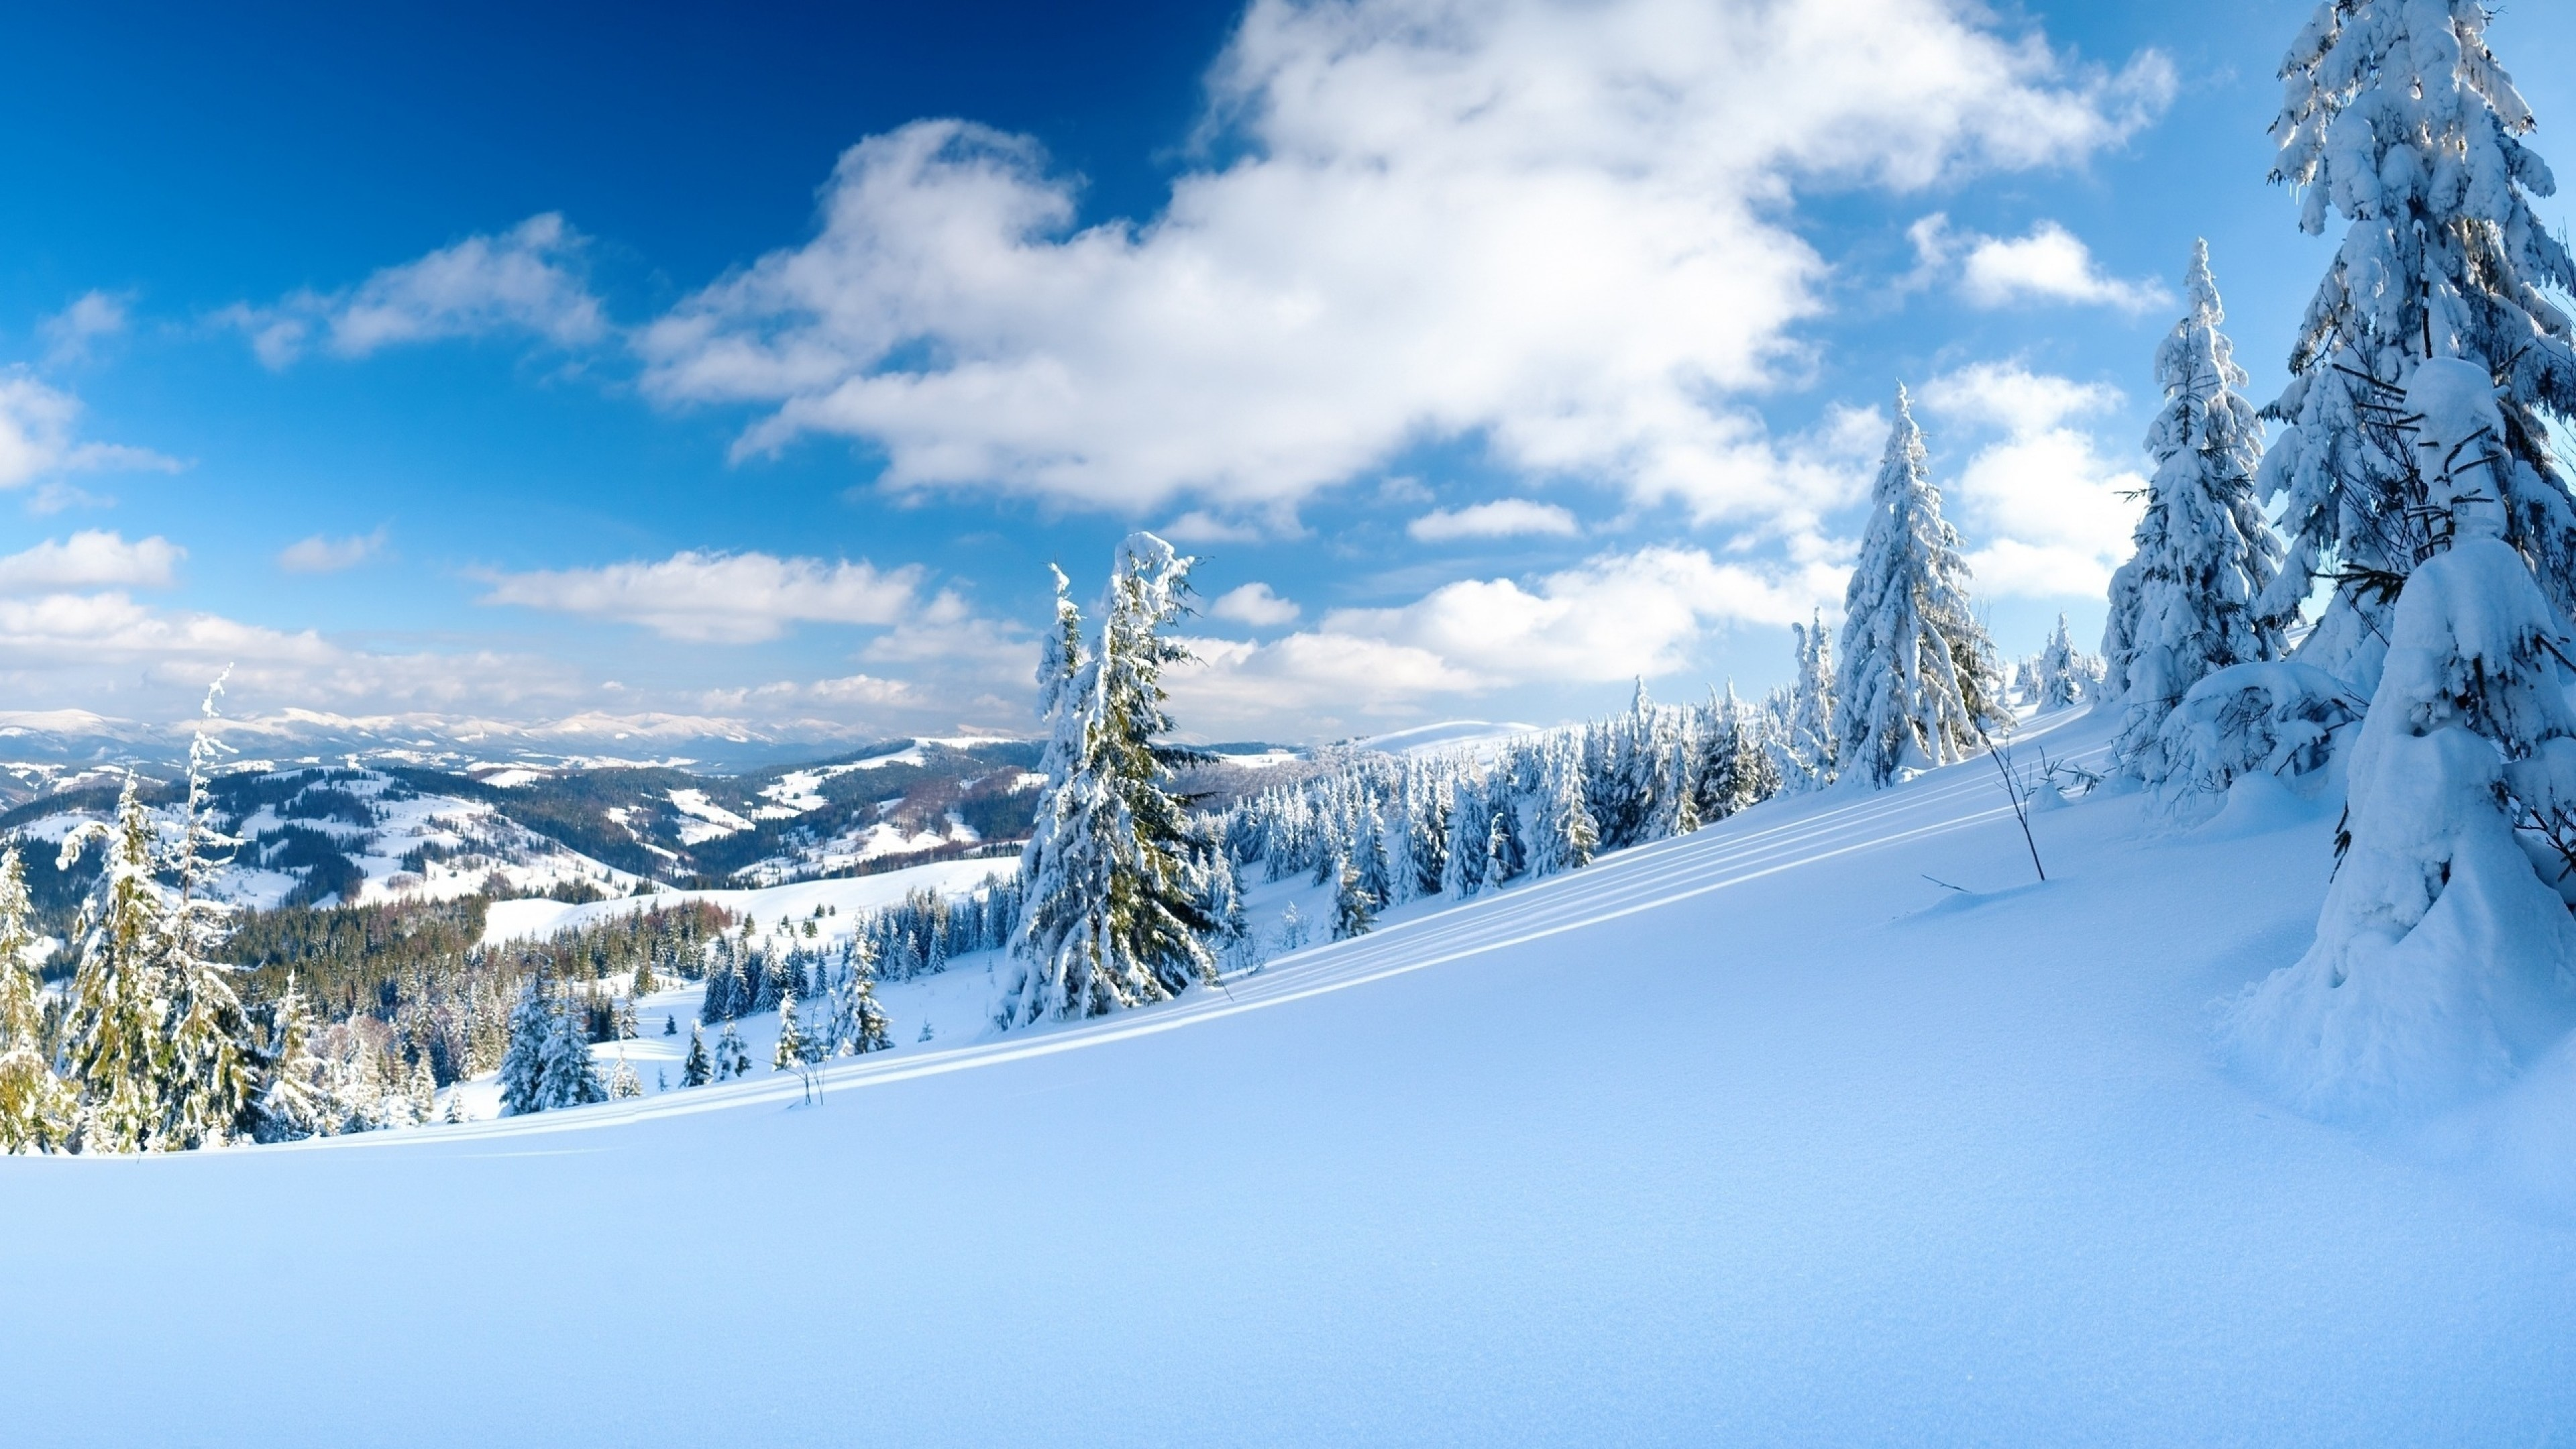 3840x2160  Wallpaper snow, slope, winter, mountains, resort, mountain-skiing,